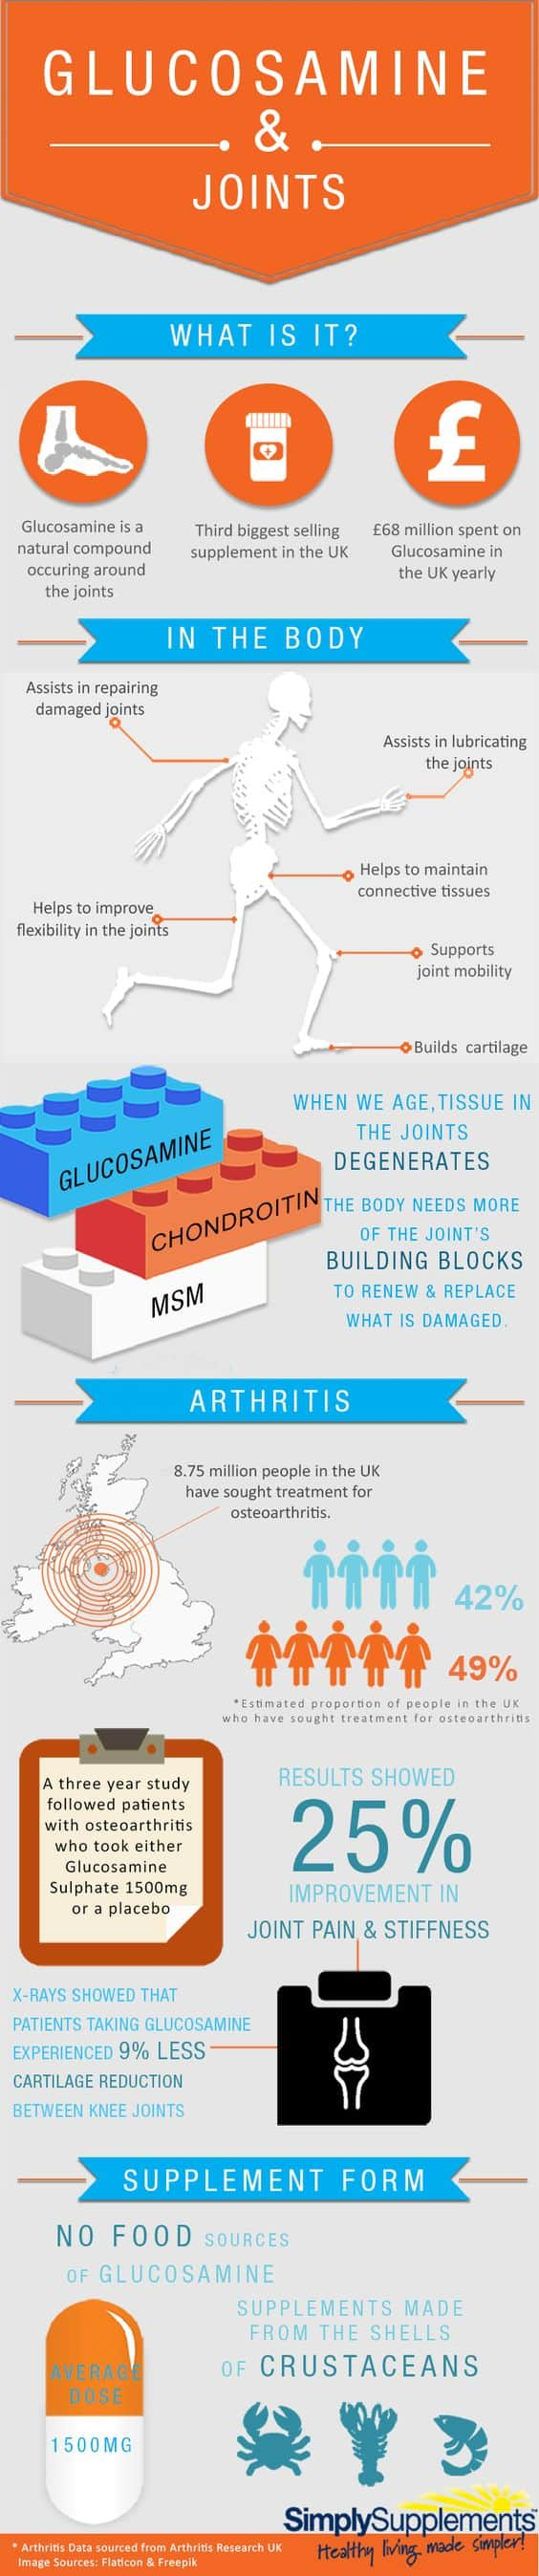 Does Glucosamine Treat and Prevent Arthritis? Great question - we disect it in our recent blog post.